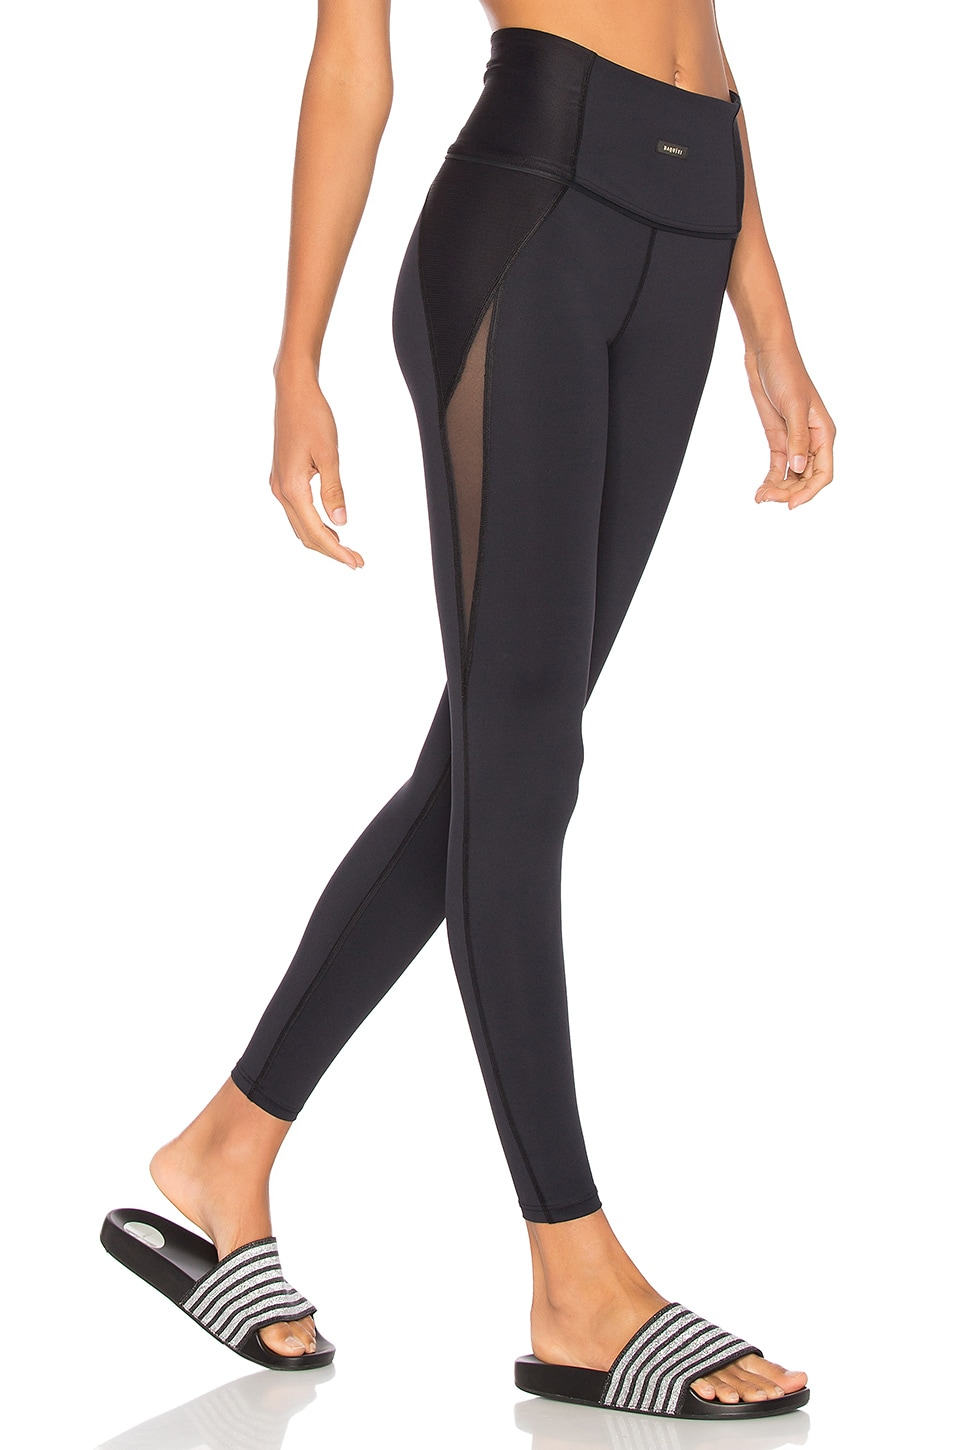 Photo of Velocity Legging by Daquini on sale